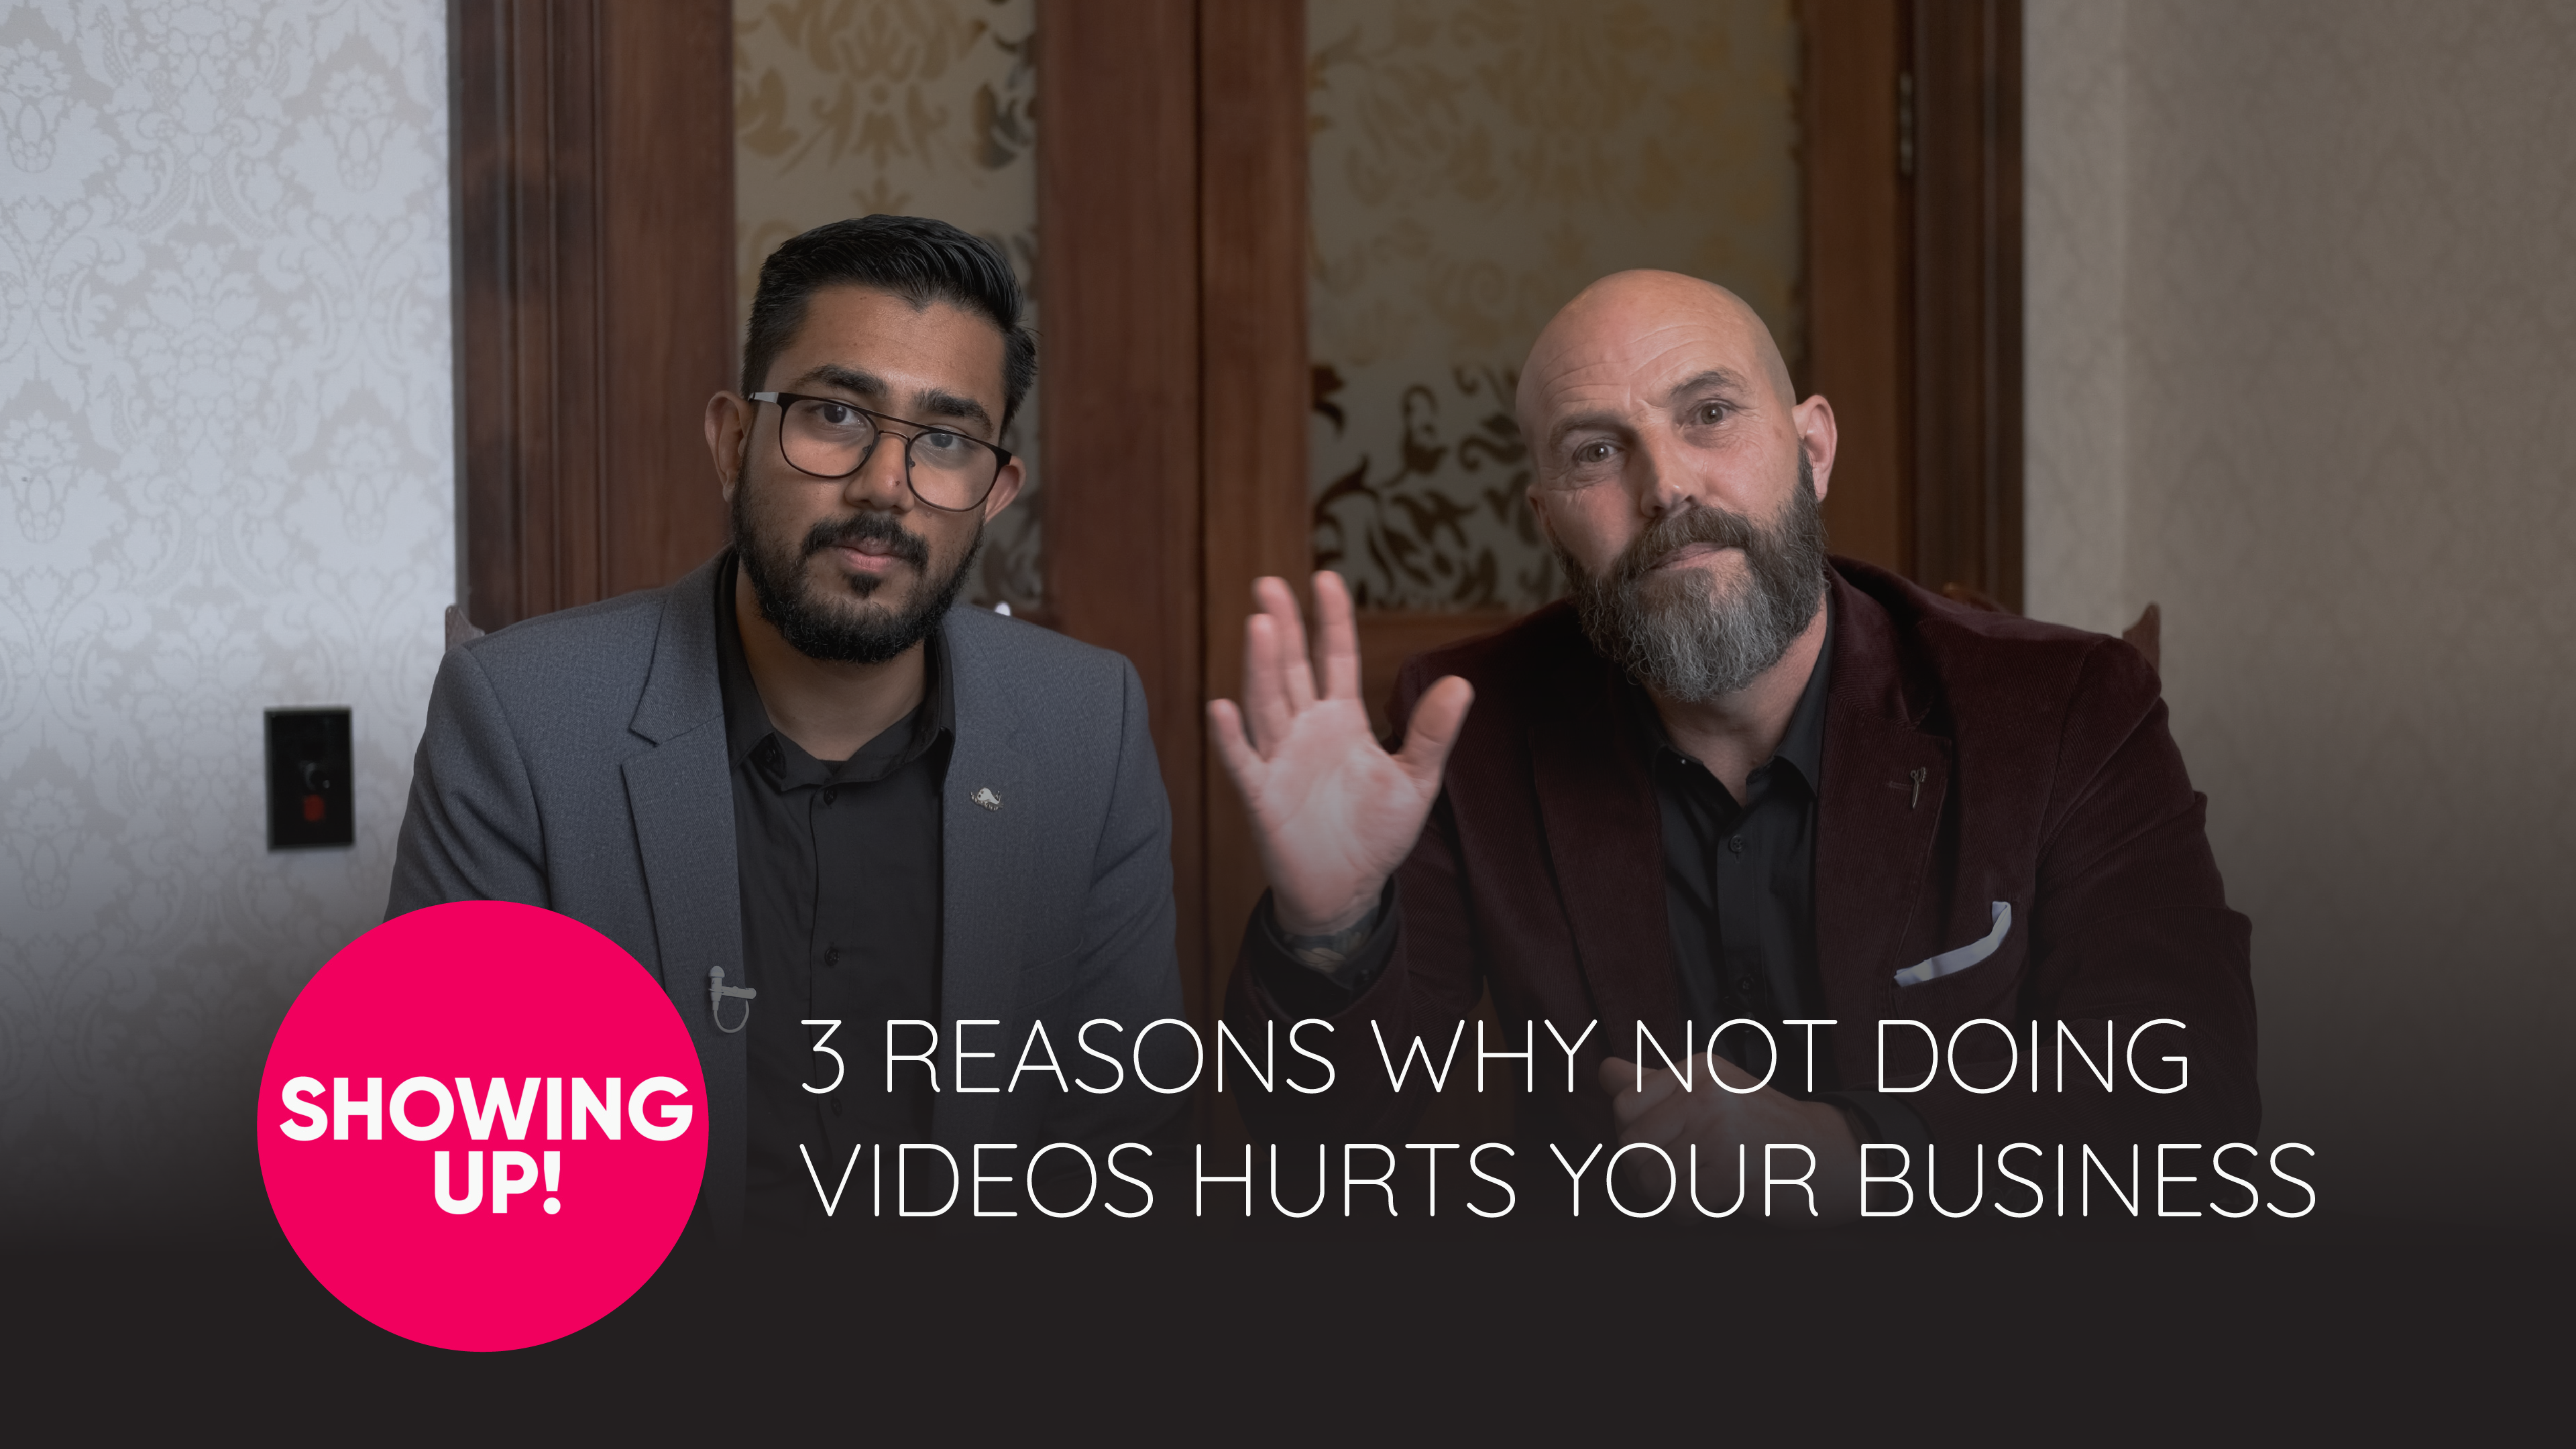 Showing Up! Episode 16 Three Reasons Why Not Doing Videos Hurts Your Business